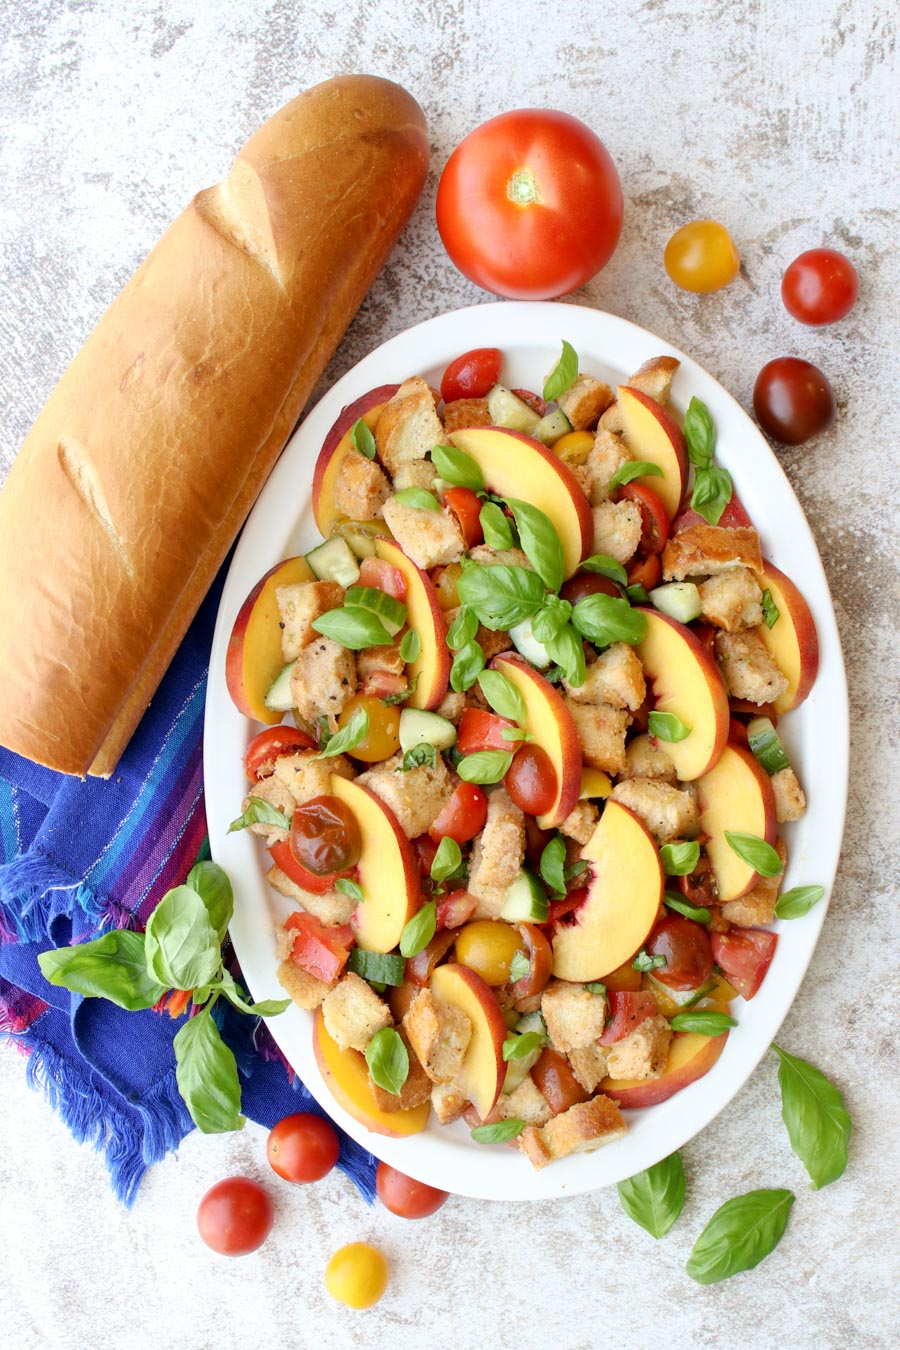 Bread salad on a white platter sitting next to a baguette